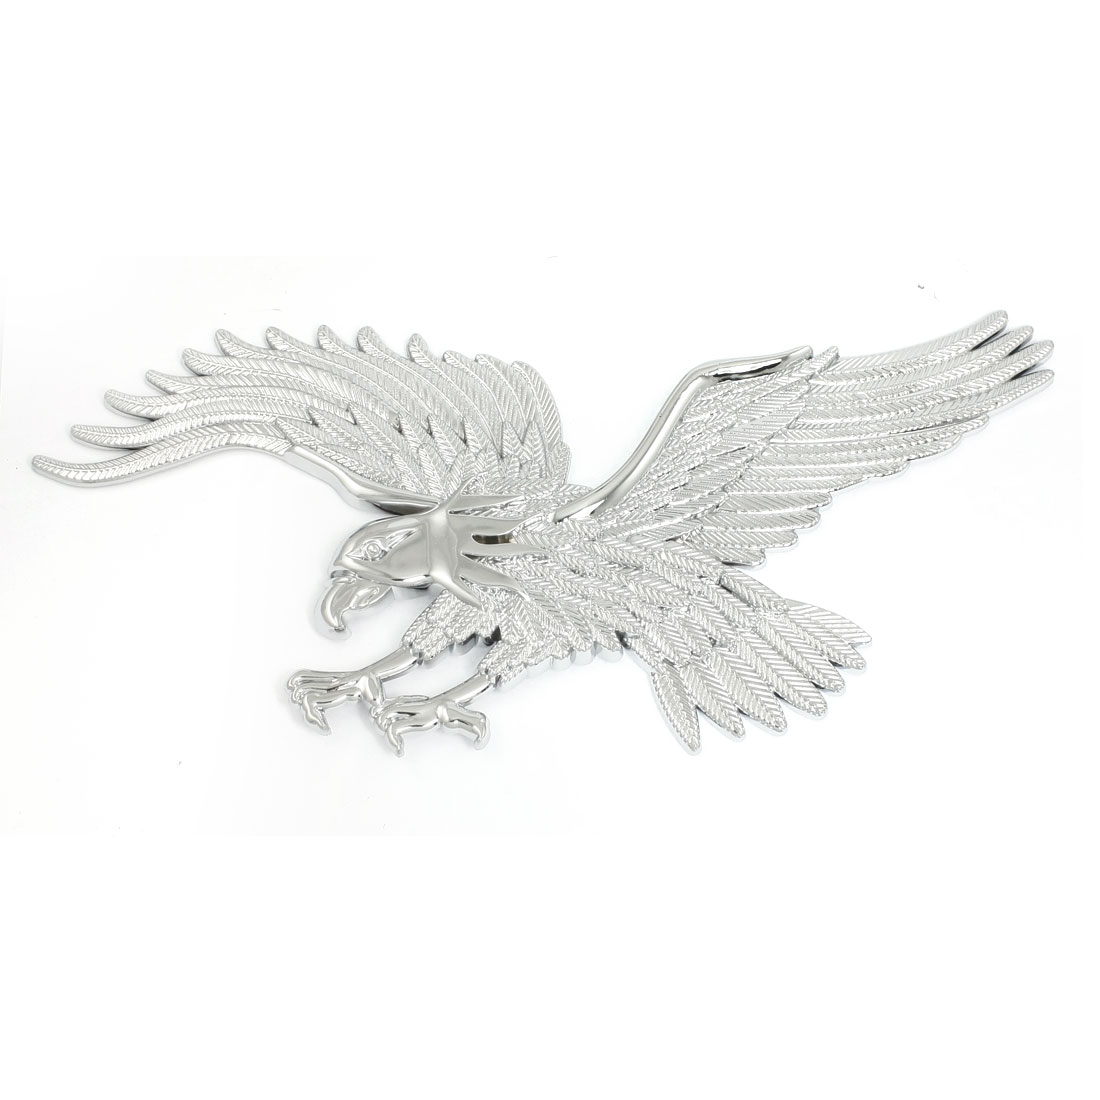 Silver Tone Plastic Eagle Pattern Auto Car Badge Sticker Emblem Decor